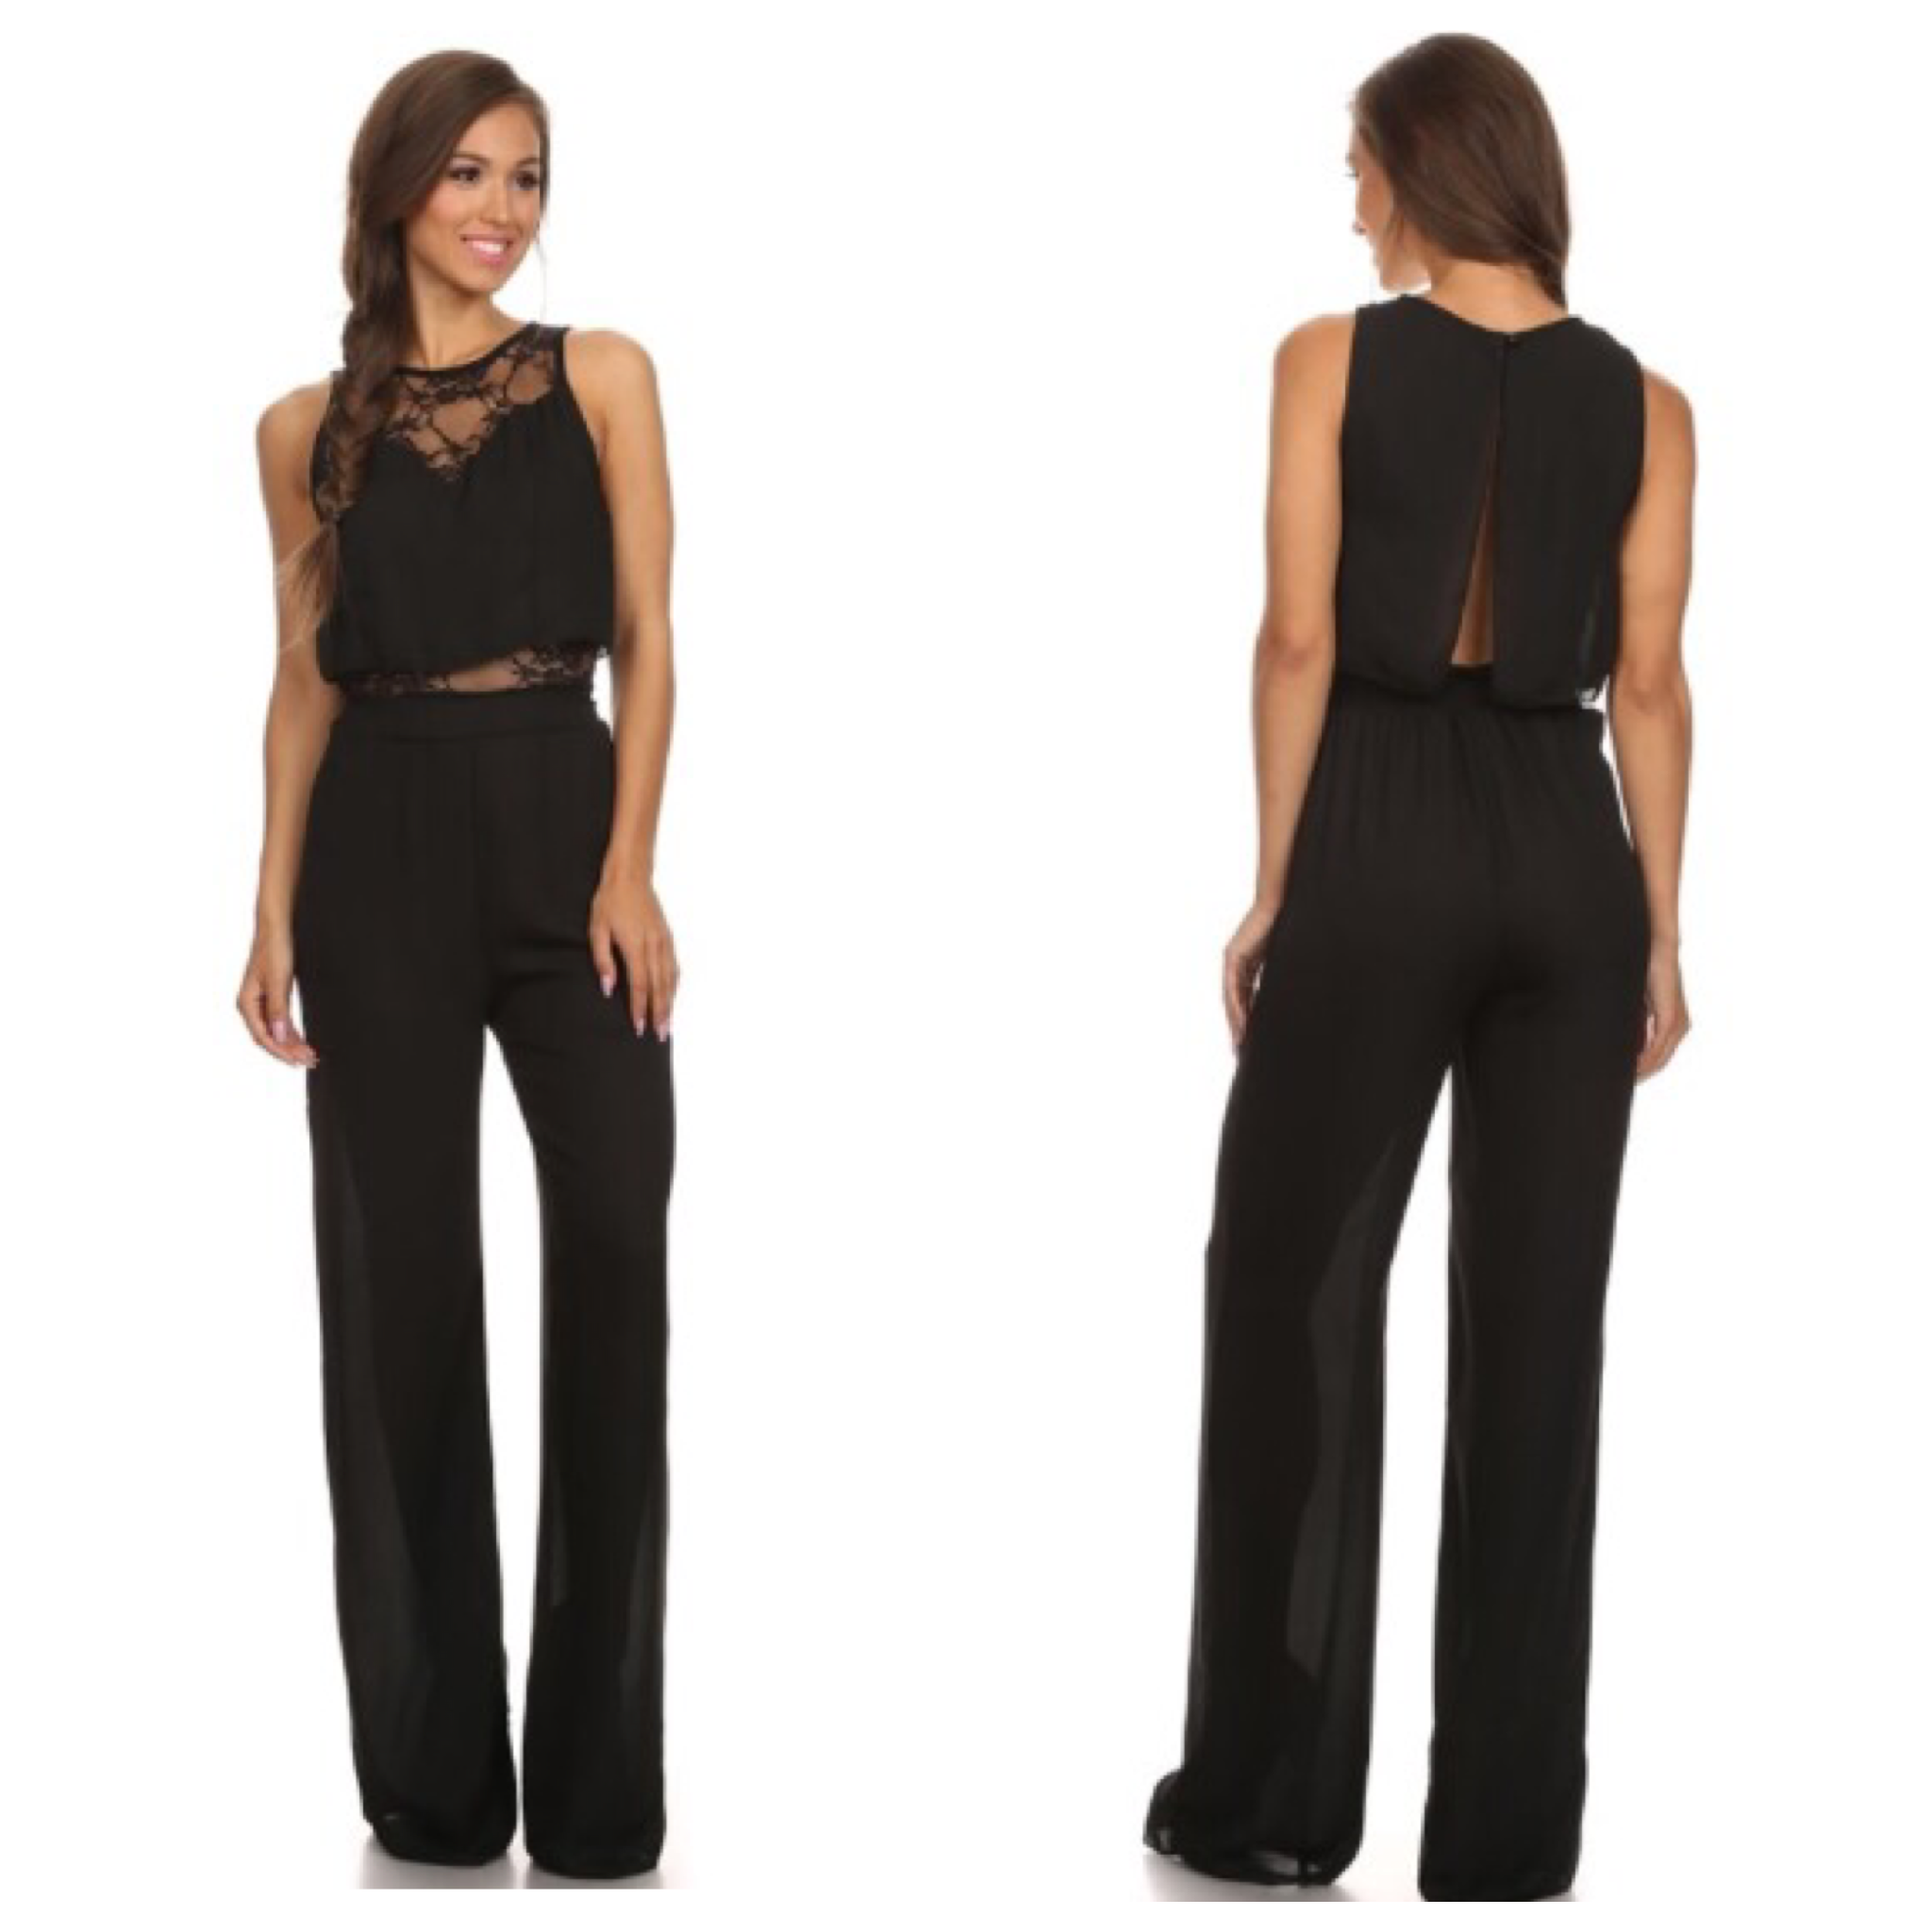 60135bdeb14 Black Jumpsuit w Lace · Jaded Bliss Boutique · Online Store Powered ...